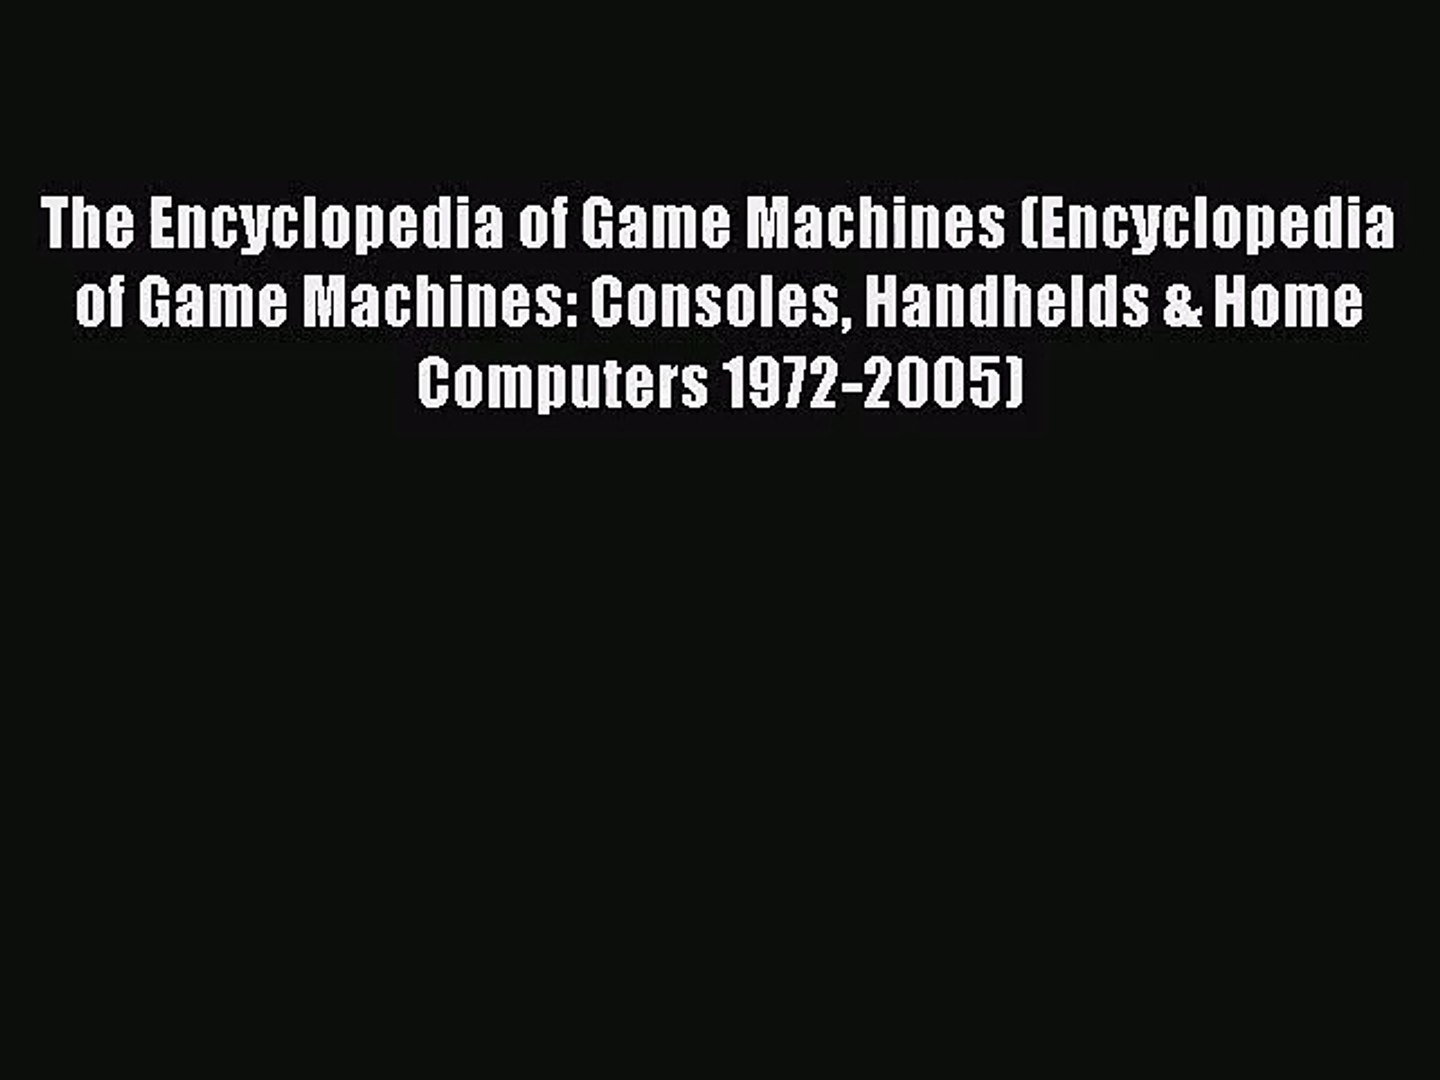 [PDF Download] The Encyclopedia of Game Machines (Encyclopedia of Game Machines: Consoles Handhelds